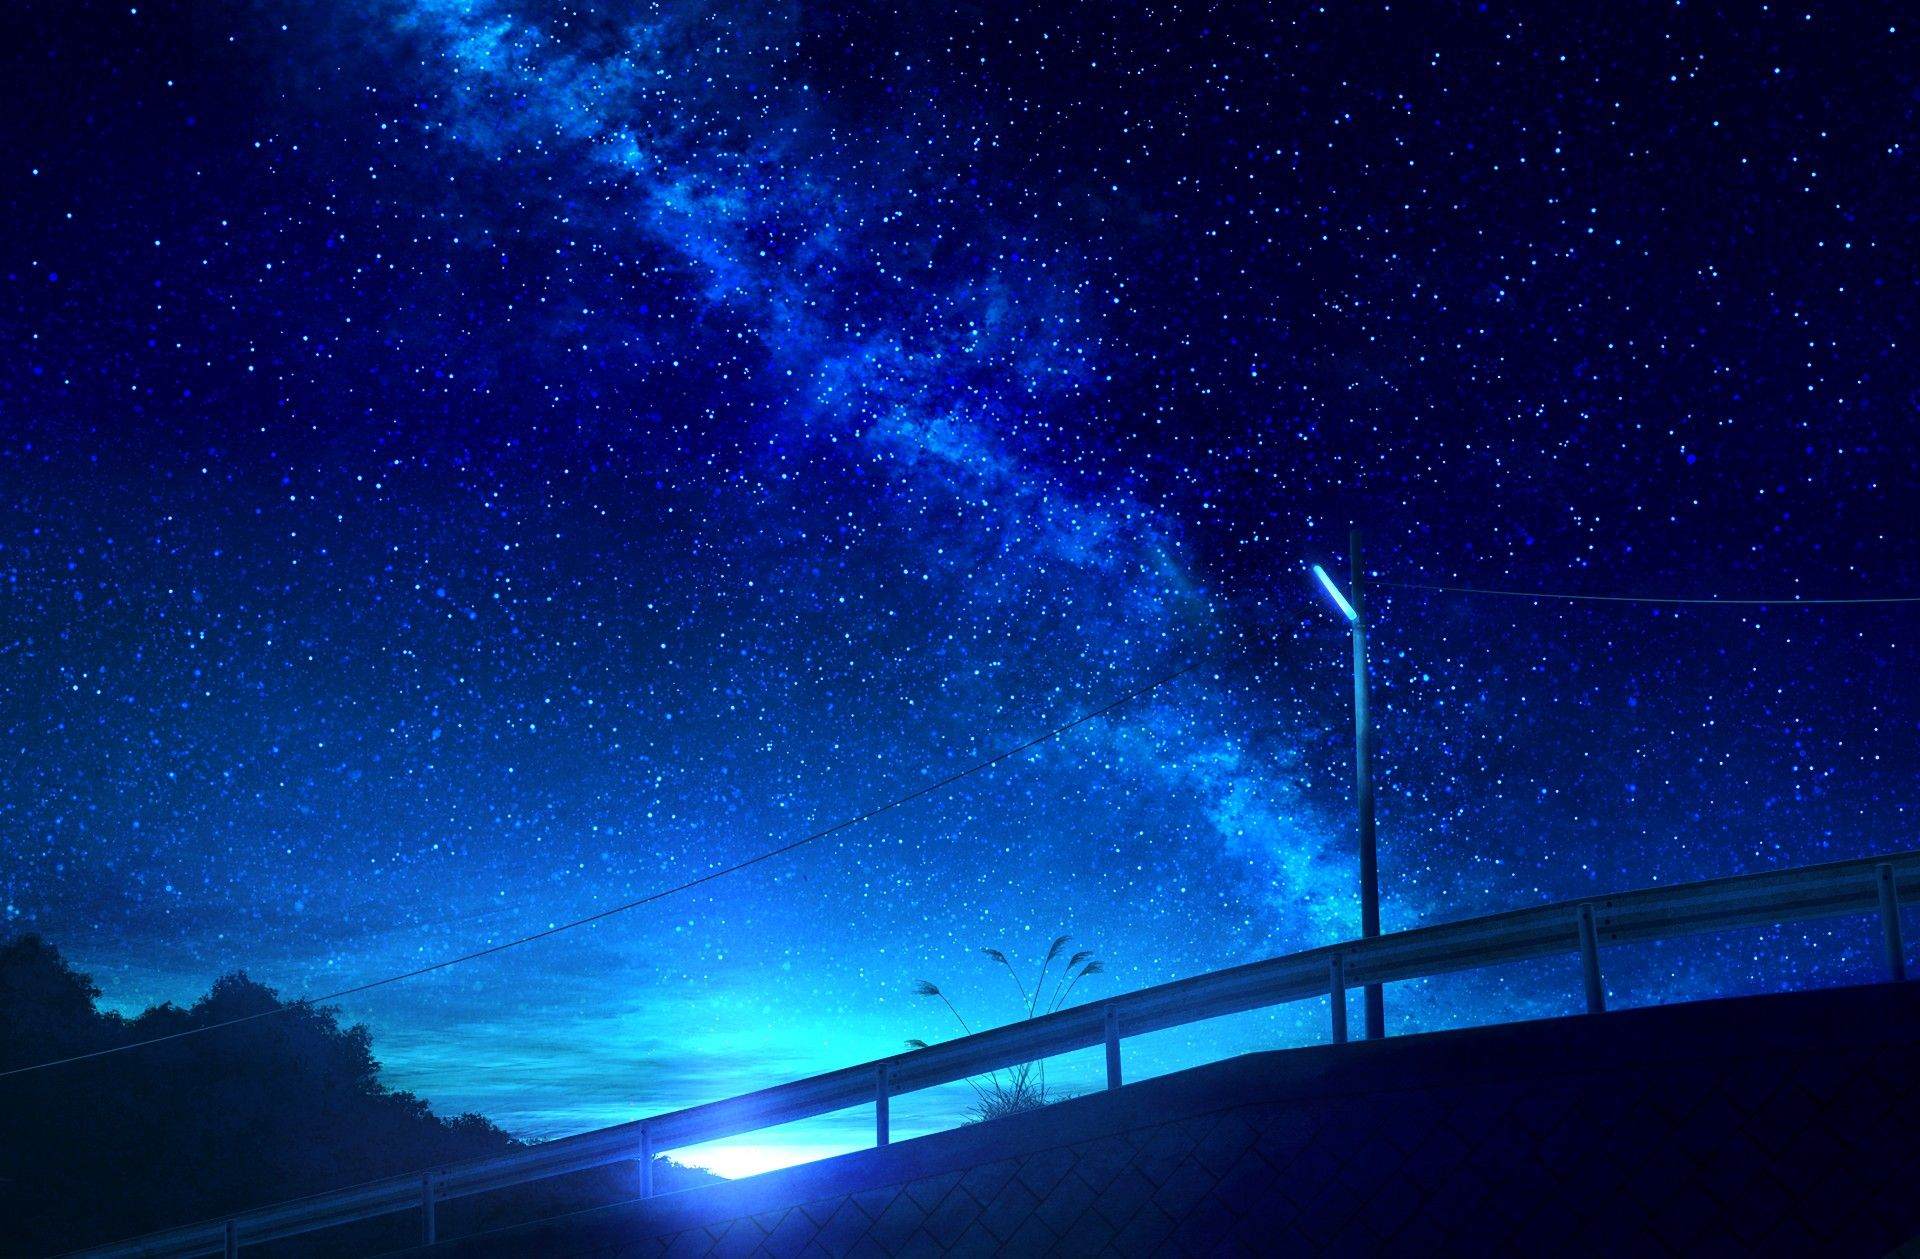 anime sky Wallpapers kawaii art view KurdishOtaku